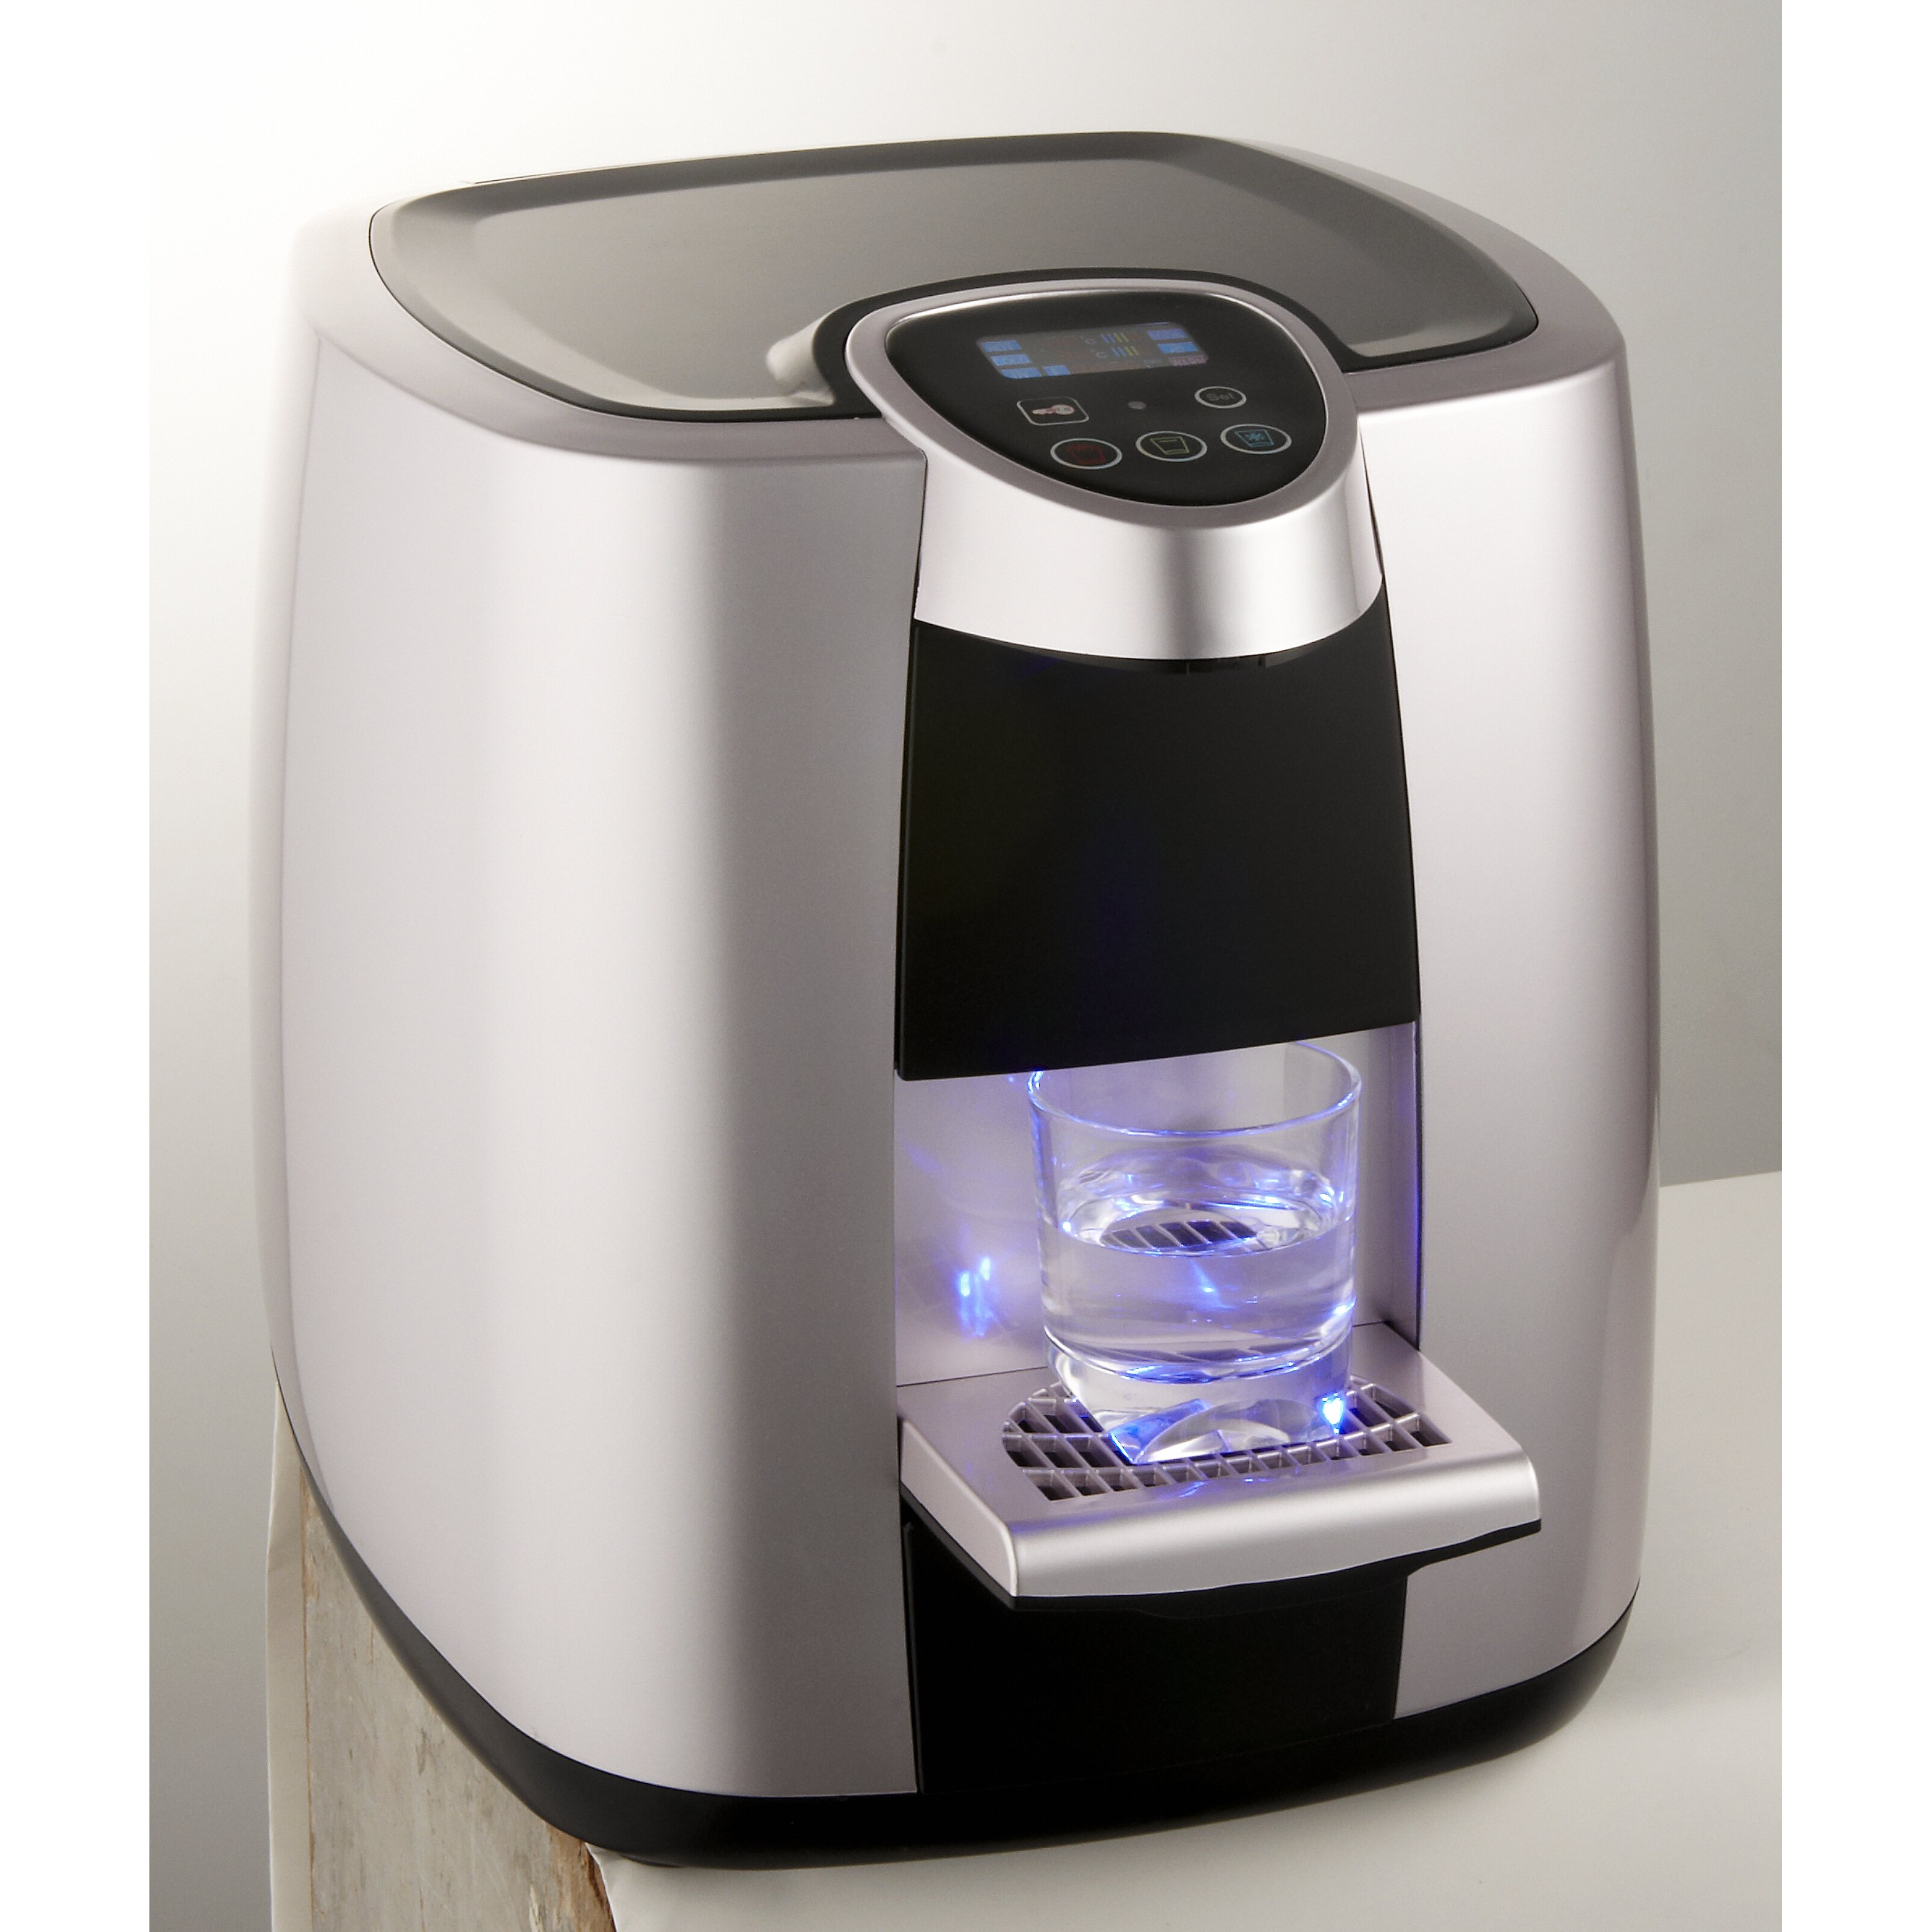 Countertop Hot And Cold Water Dispenser : Bottleless Countertop Hot and Cold Water Cooler by Sage Water Coolers